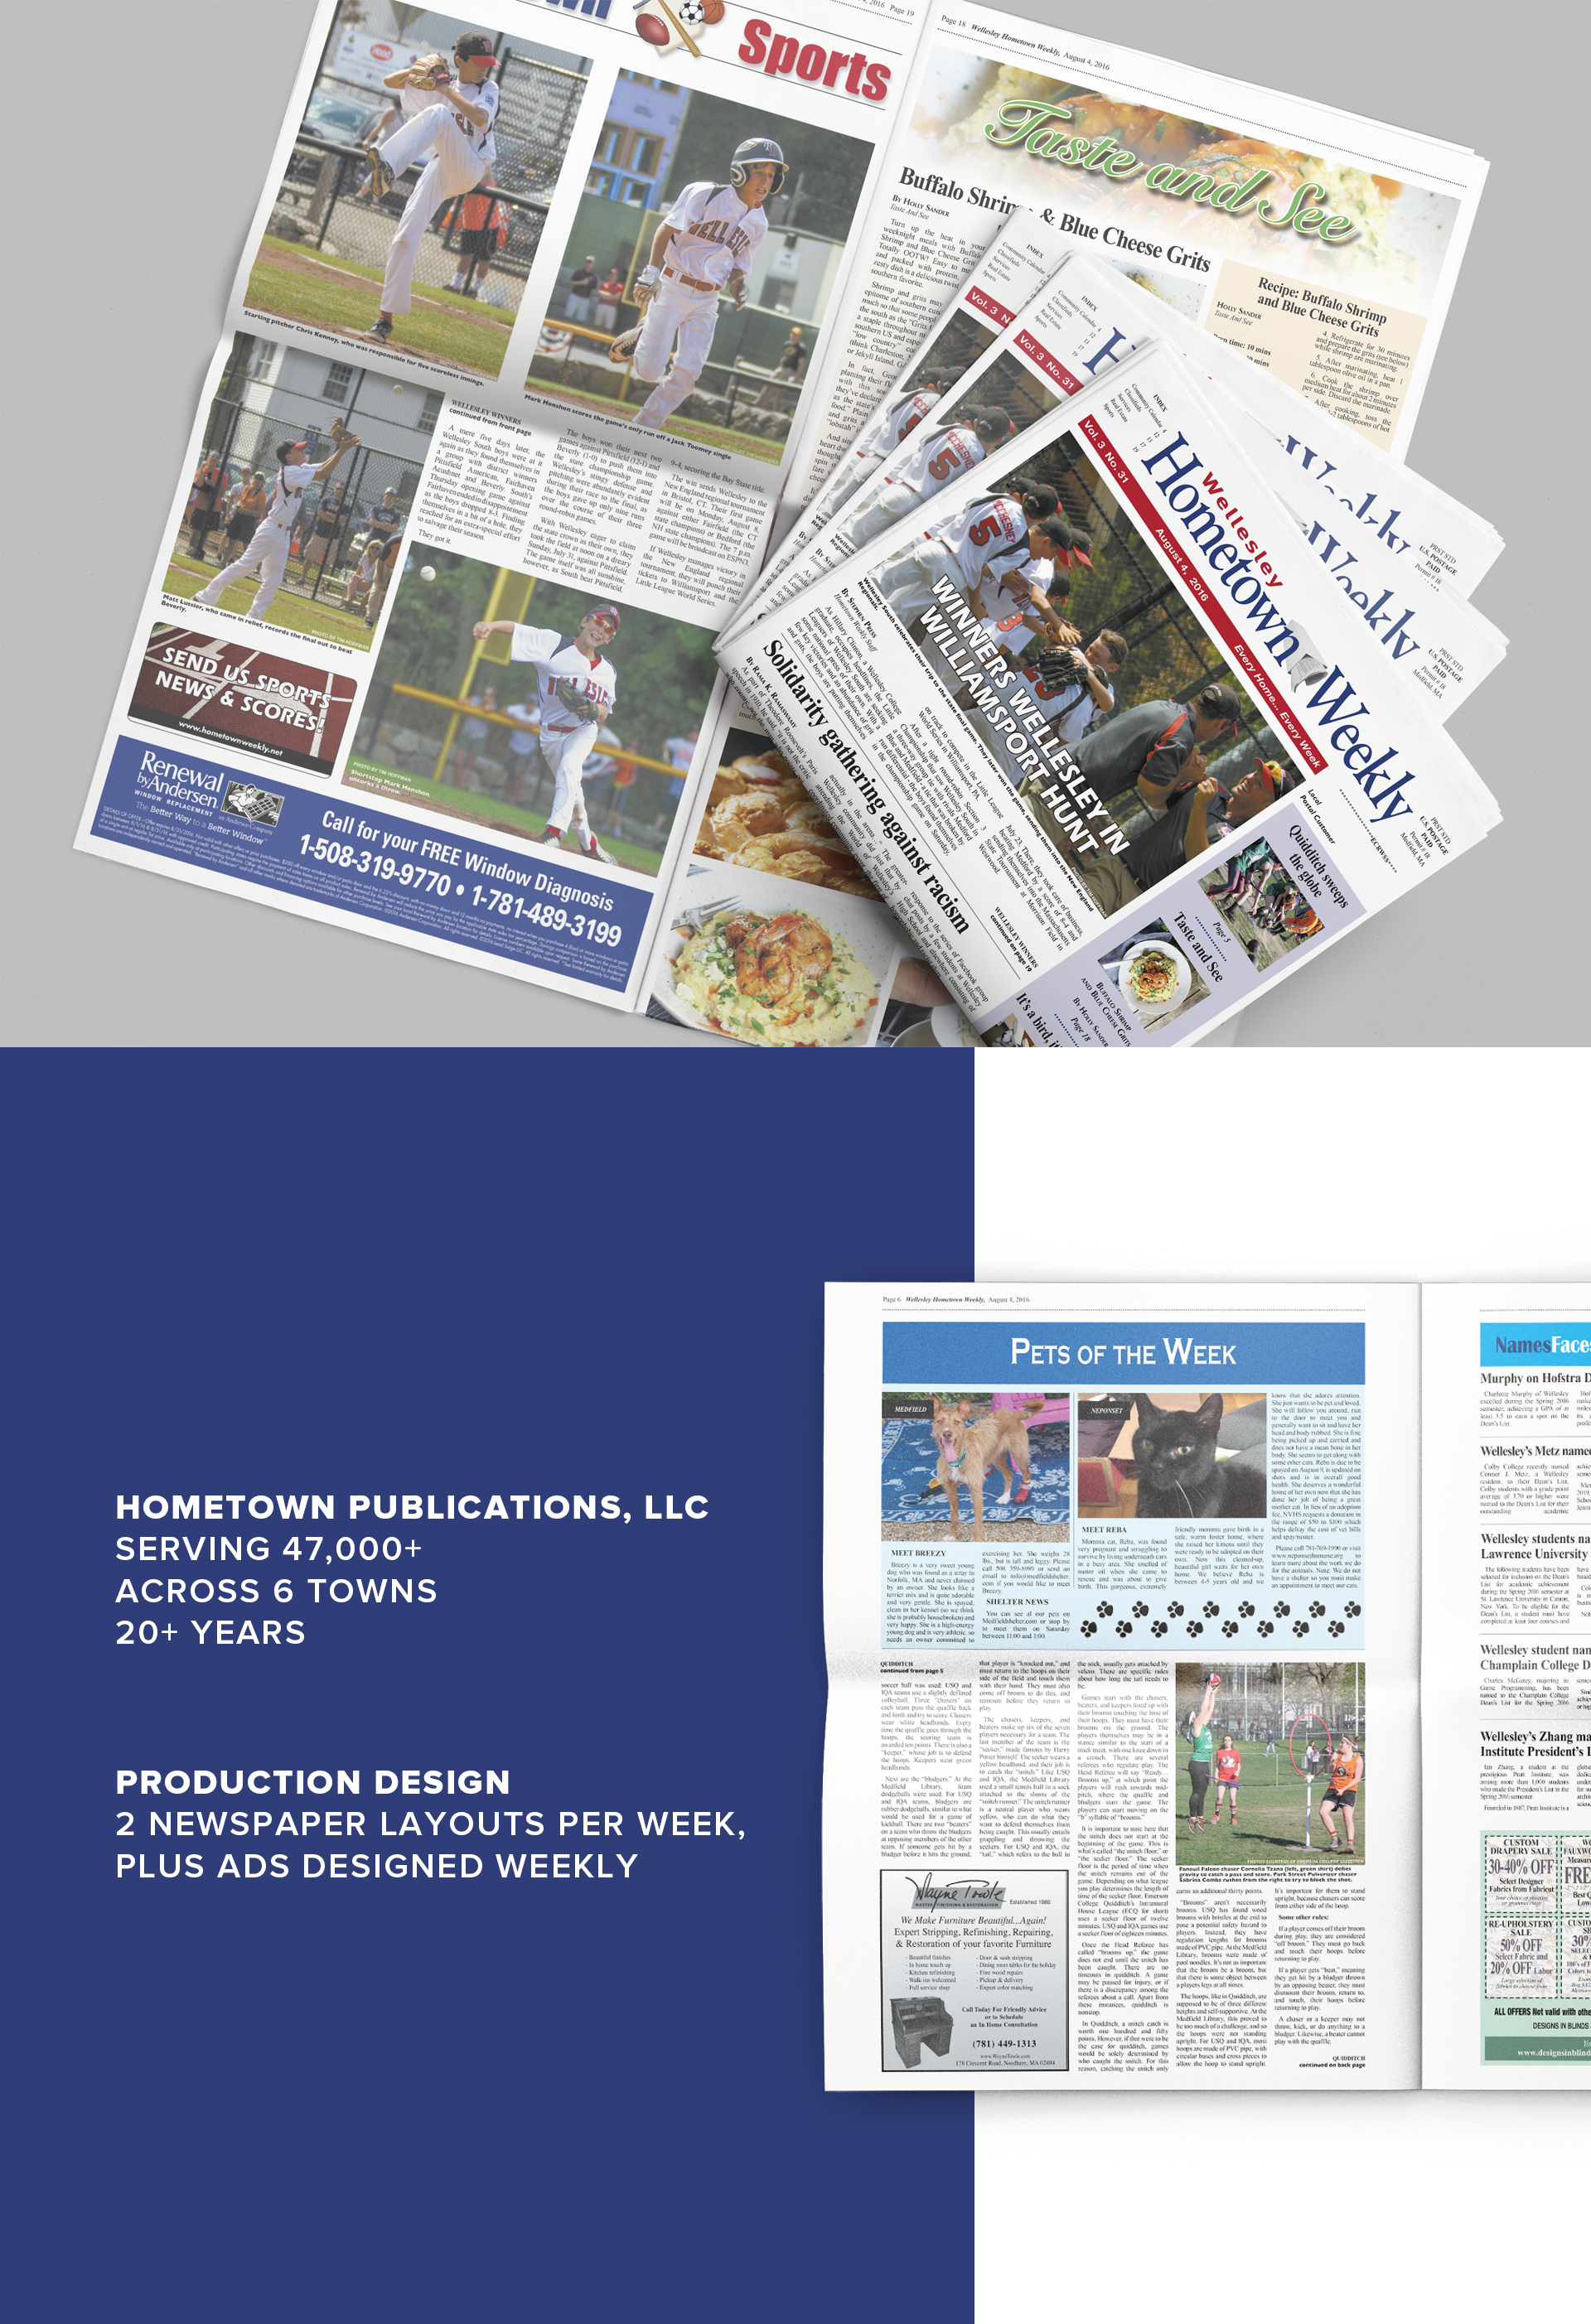 Mockup of Hometown Weekly Newspaper layout design by Geena Matuson @geenamatuson #thegirlmirage @ https://thegirlmirage.com.